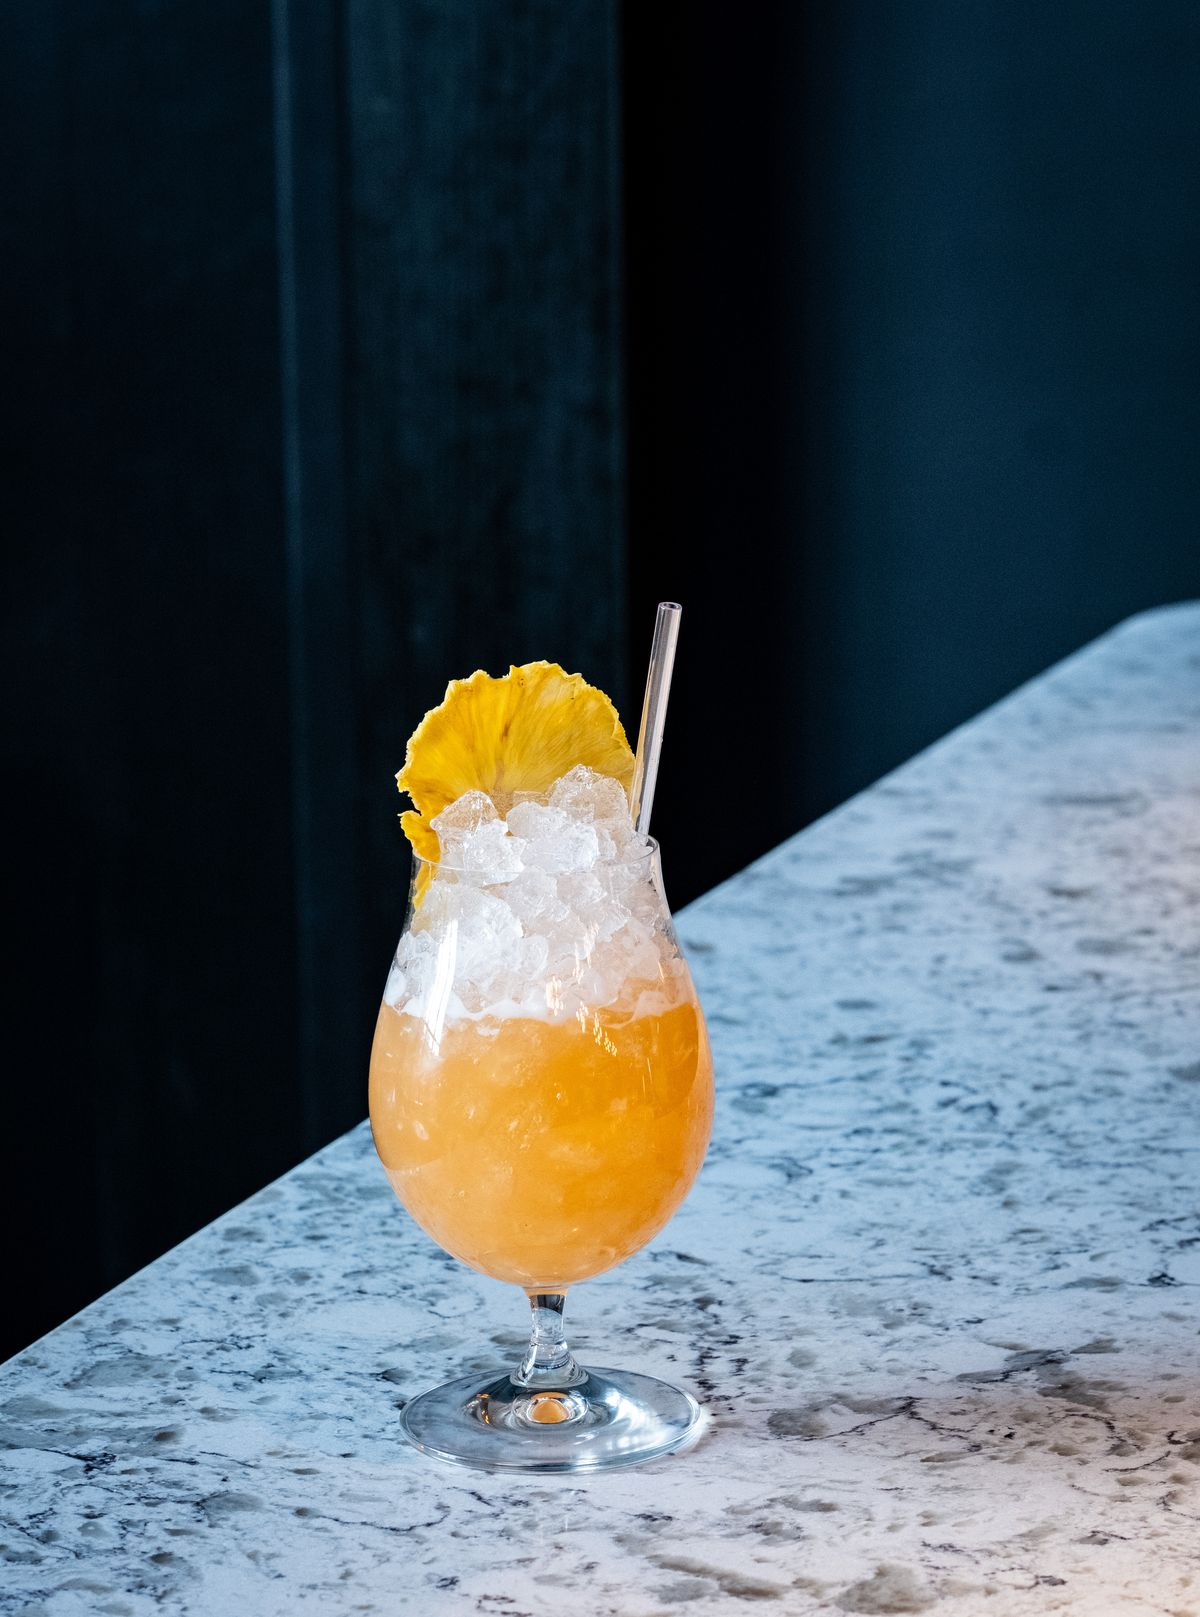 An orange cocktail is served on a marble bar top with a deep blue curtain in the background